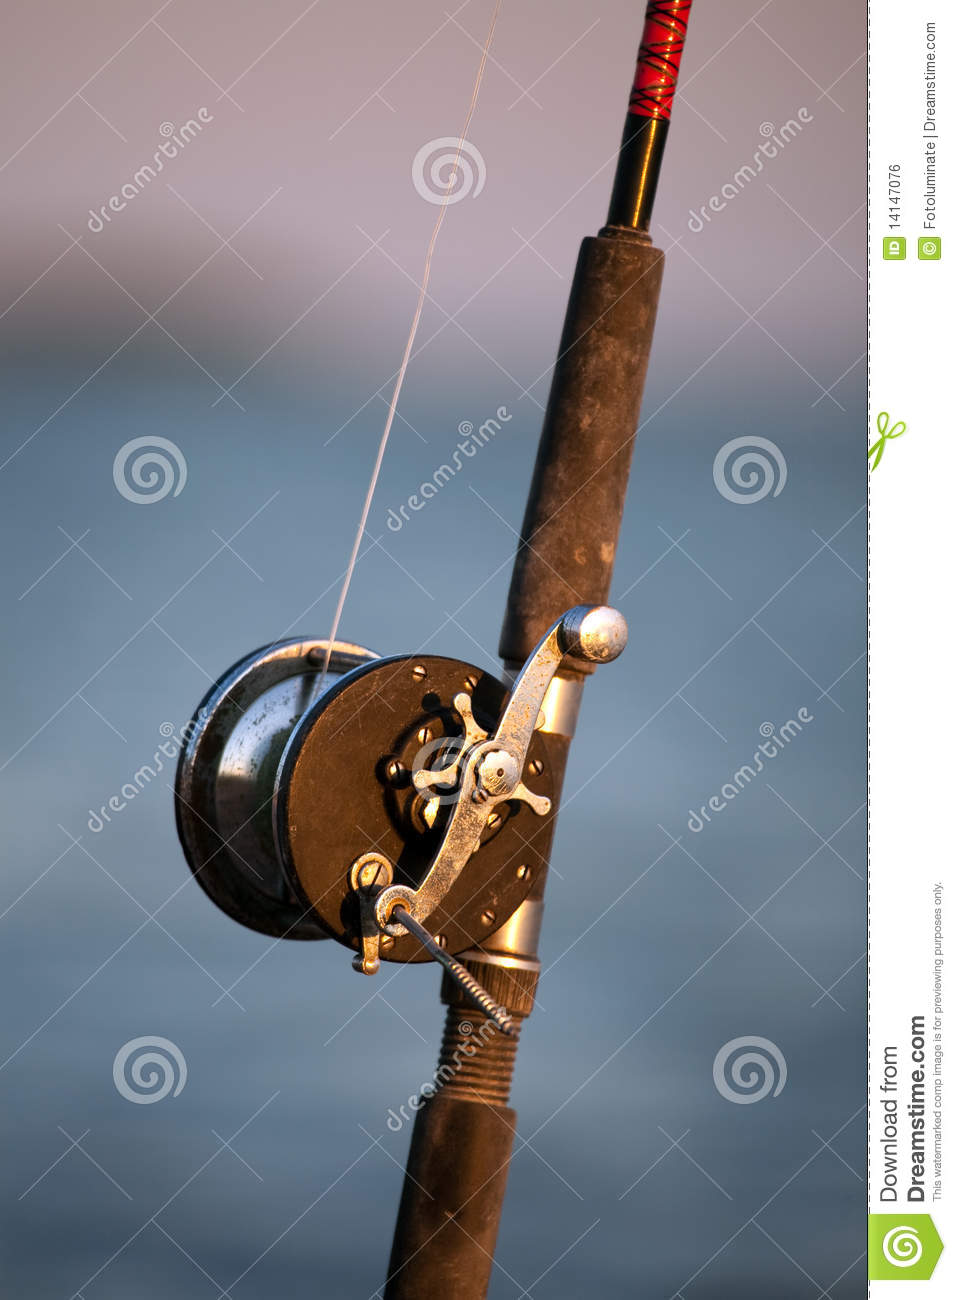 Vintage fishing rod and reel stock photo image 14147076 for Vintage fishing rods